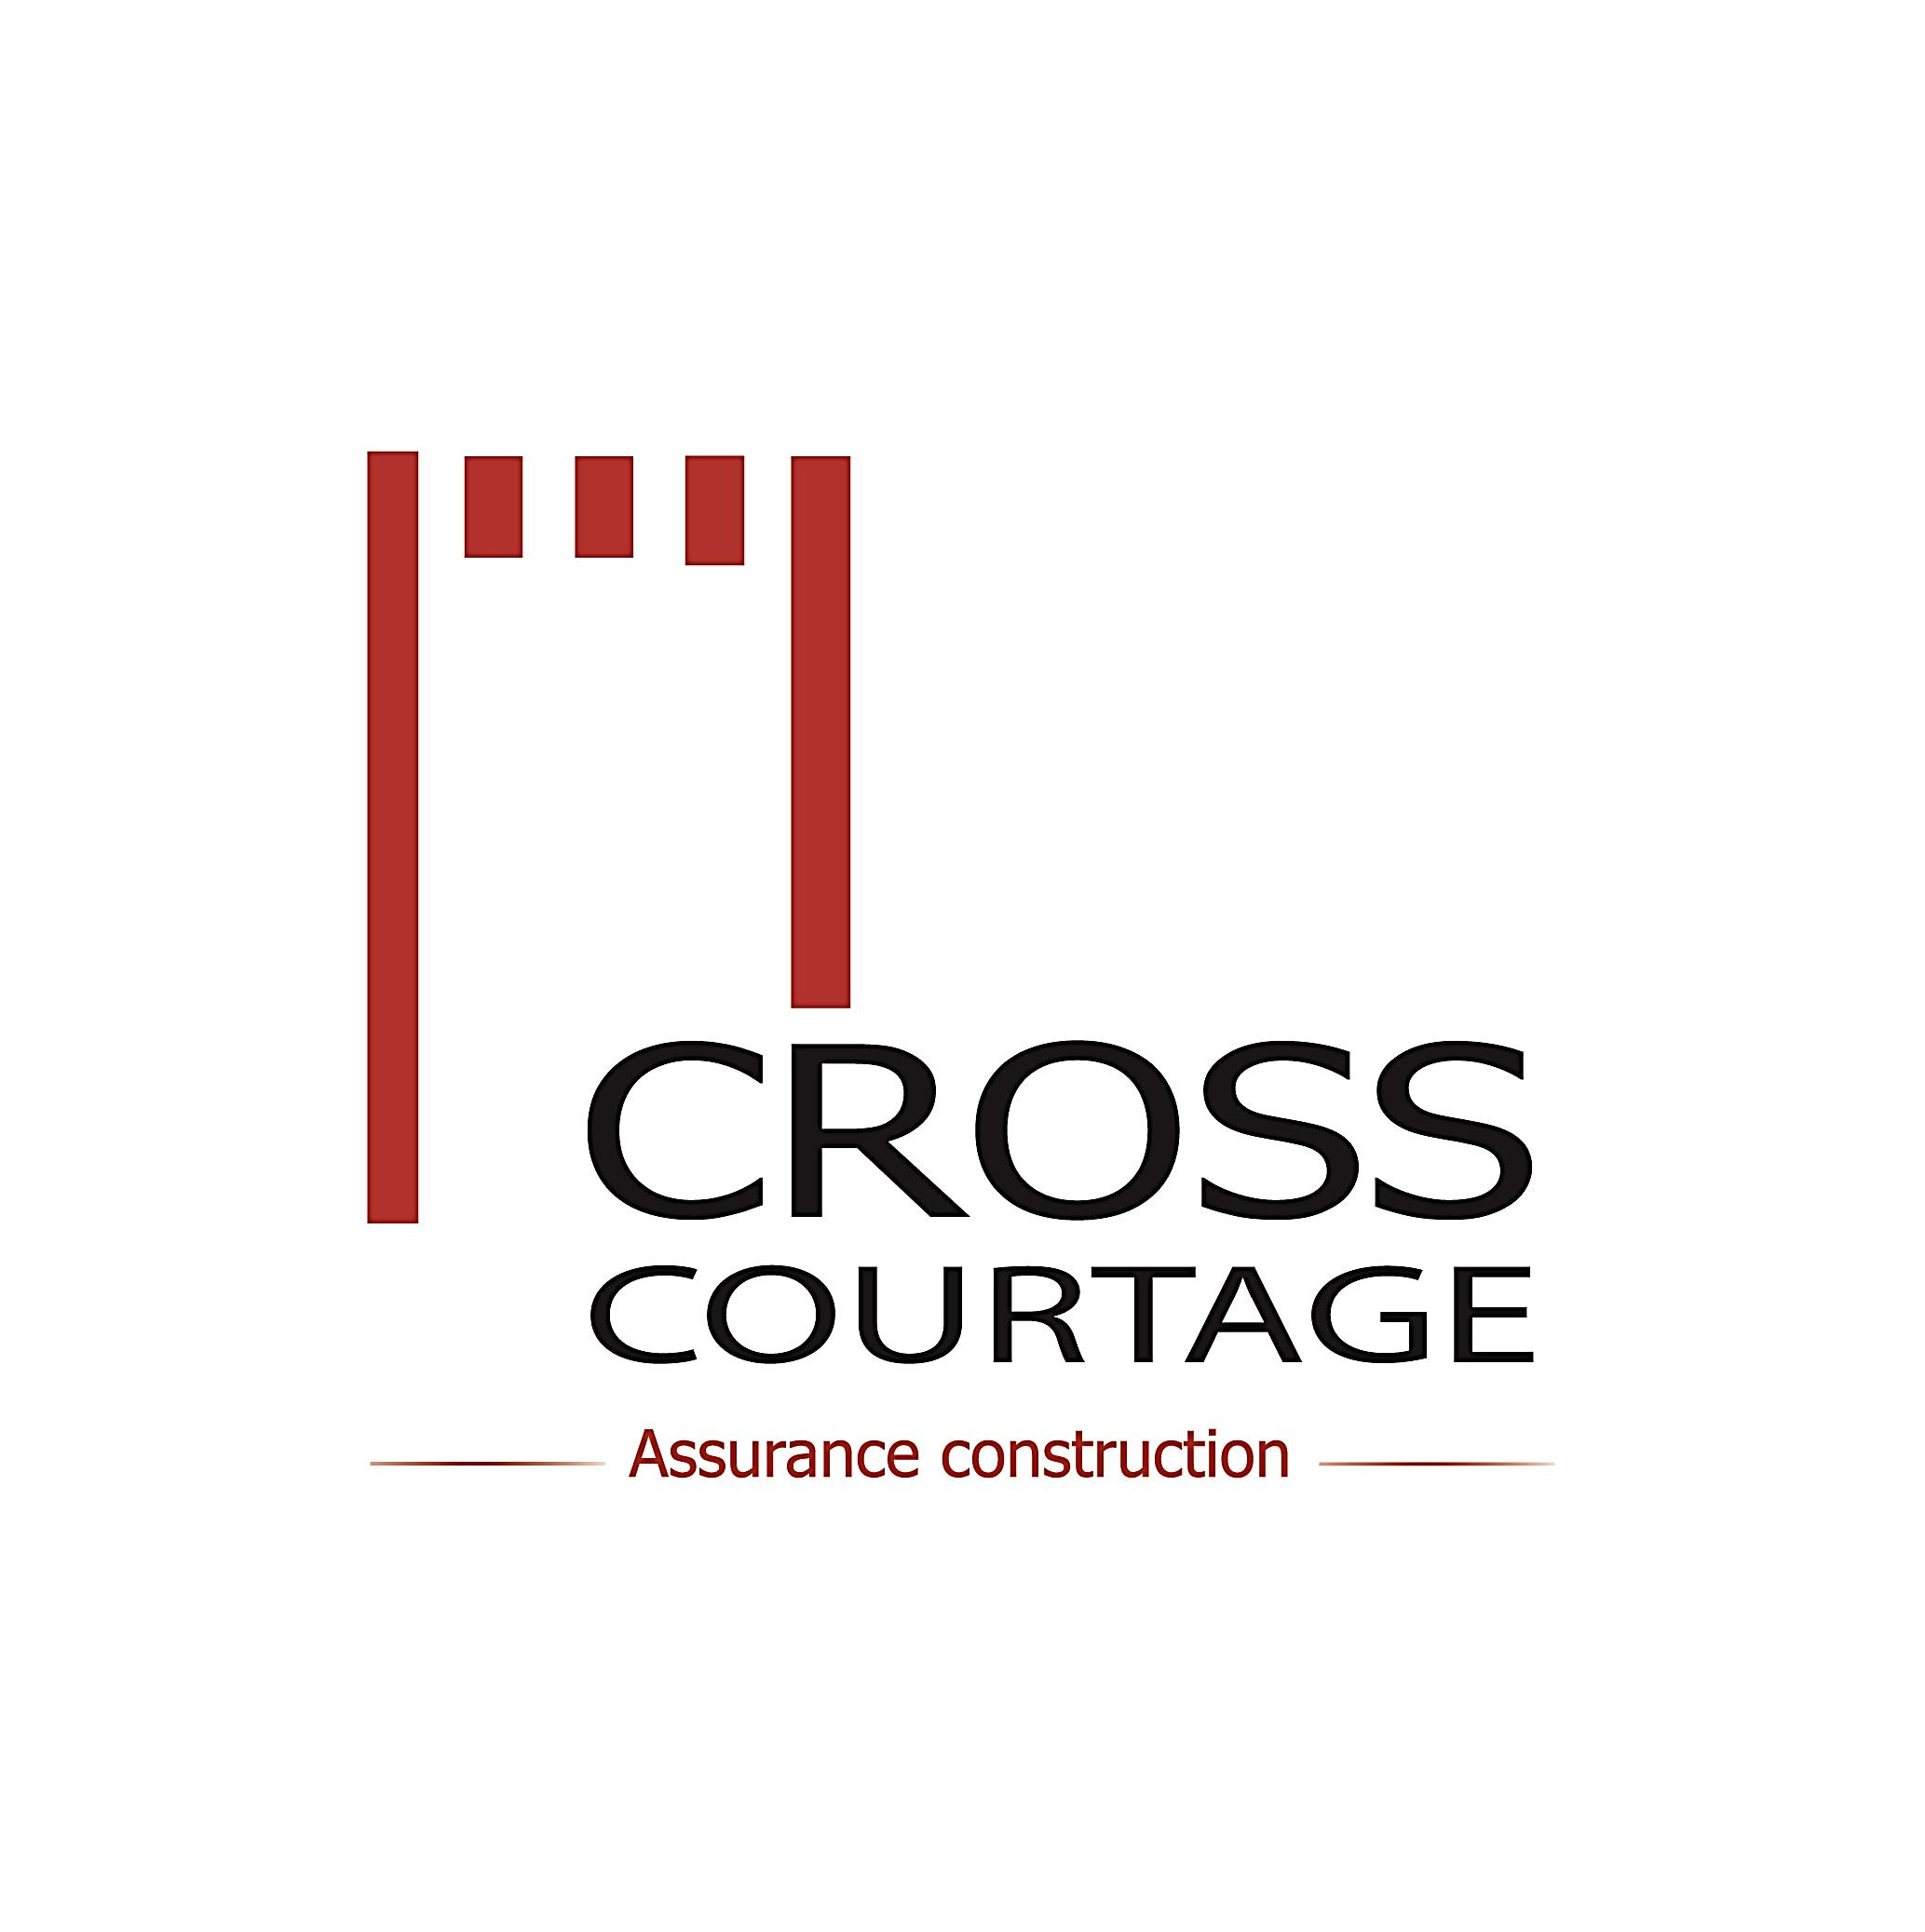 Logo CROSS COURTAGE